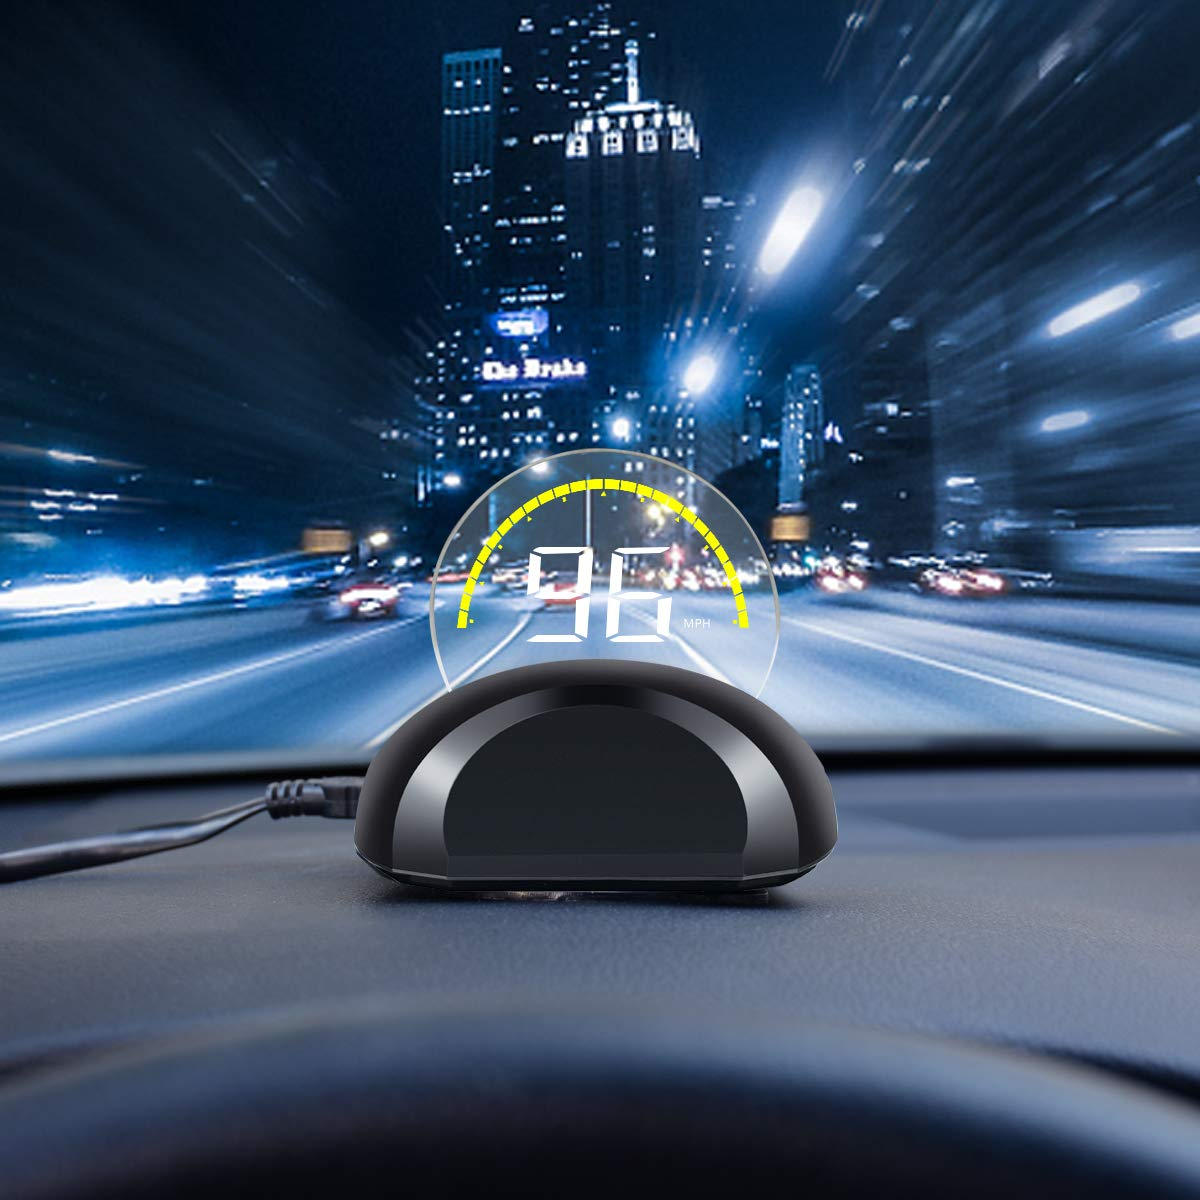 DRIVIM Car HUD Head Up Display [OBD2], Multifunctional Car Speed Display  Projector with/Engine RPM/Voltage/Safety Water Temperature Monitor, Vehicle